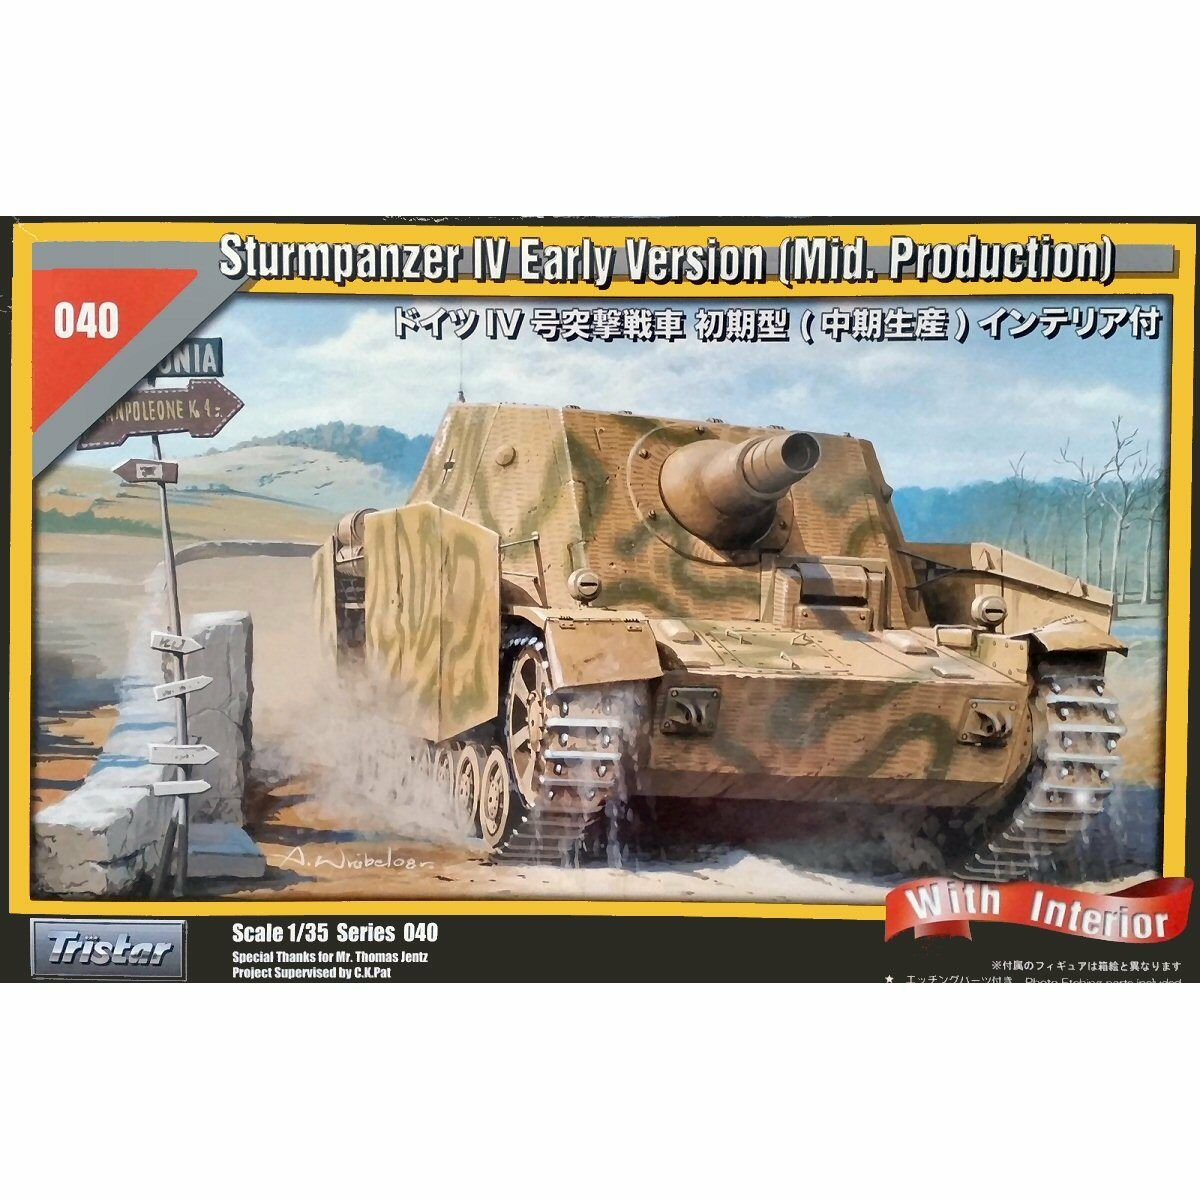 Tristar 35040 Sturmpanzer IV Early Version with Interior 1 35 scale model kit